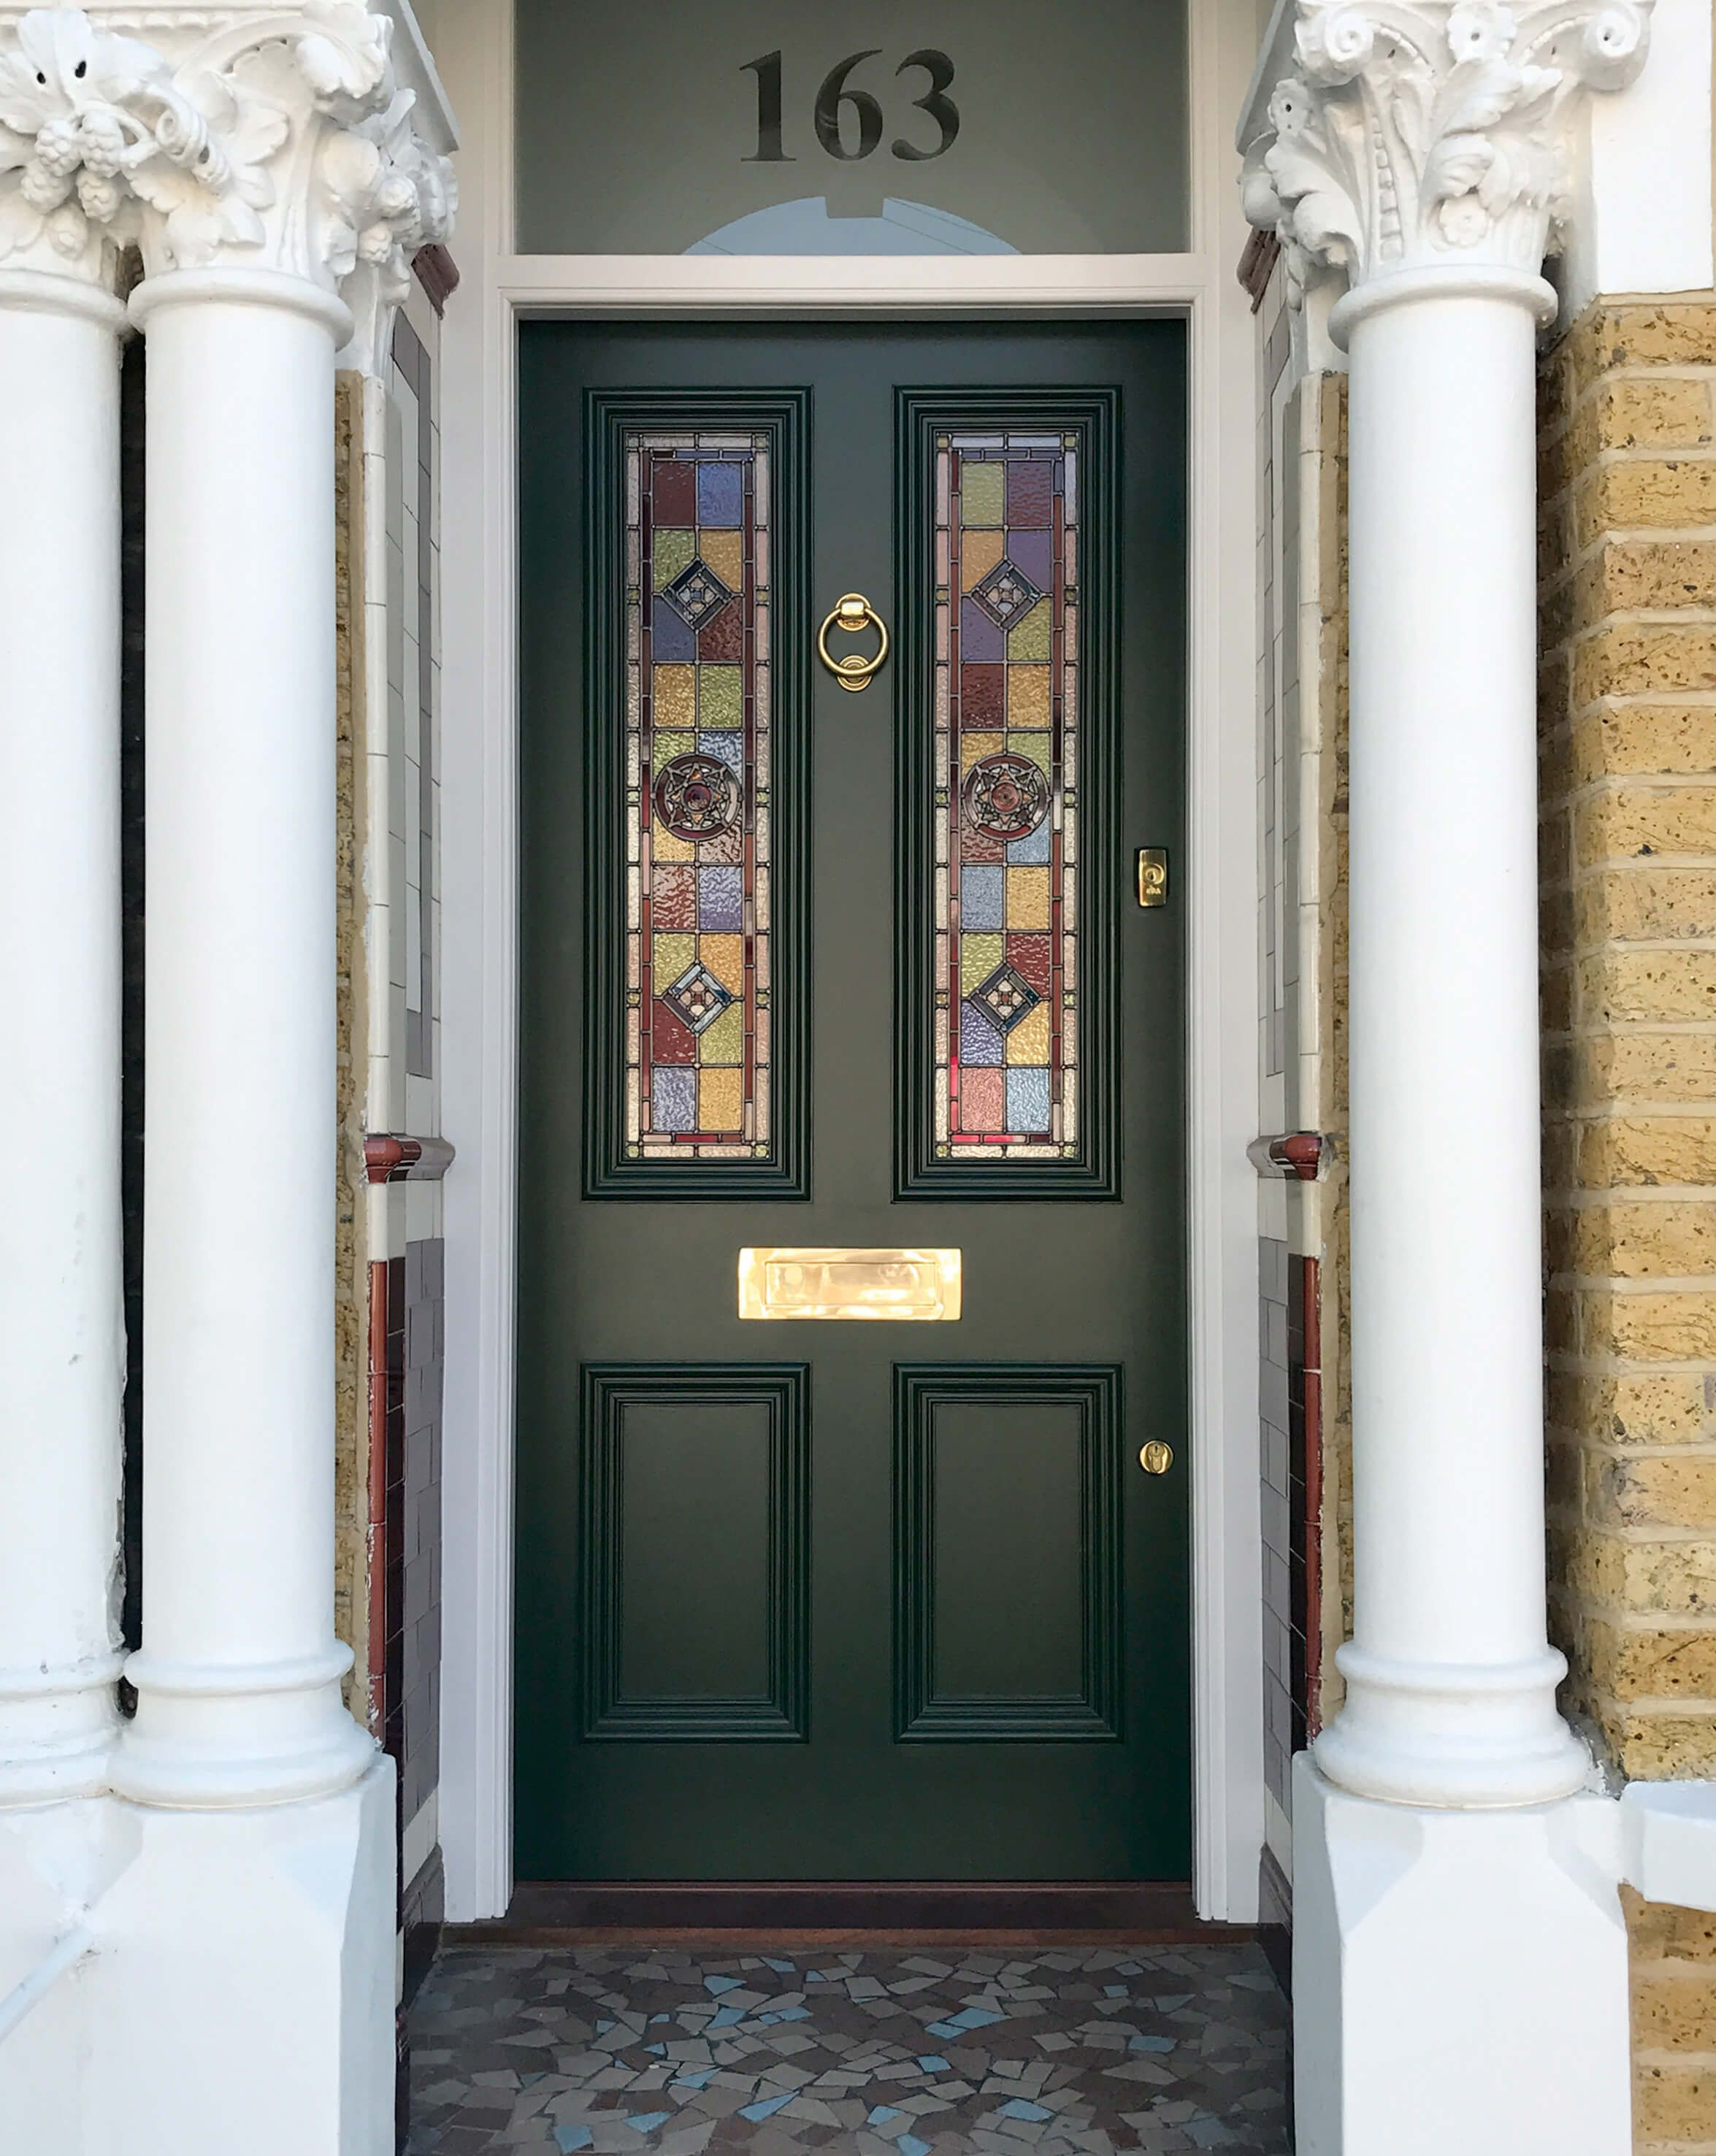 Stunning green victorian door designed and hand made with coloured stained glass panels opaque fanlight with inlaid door number and classic brass door